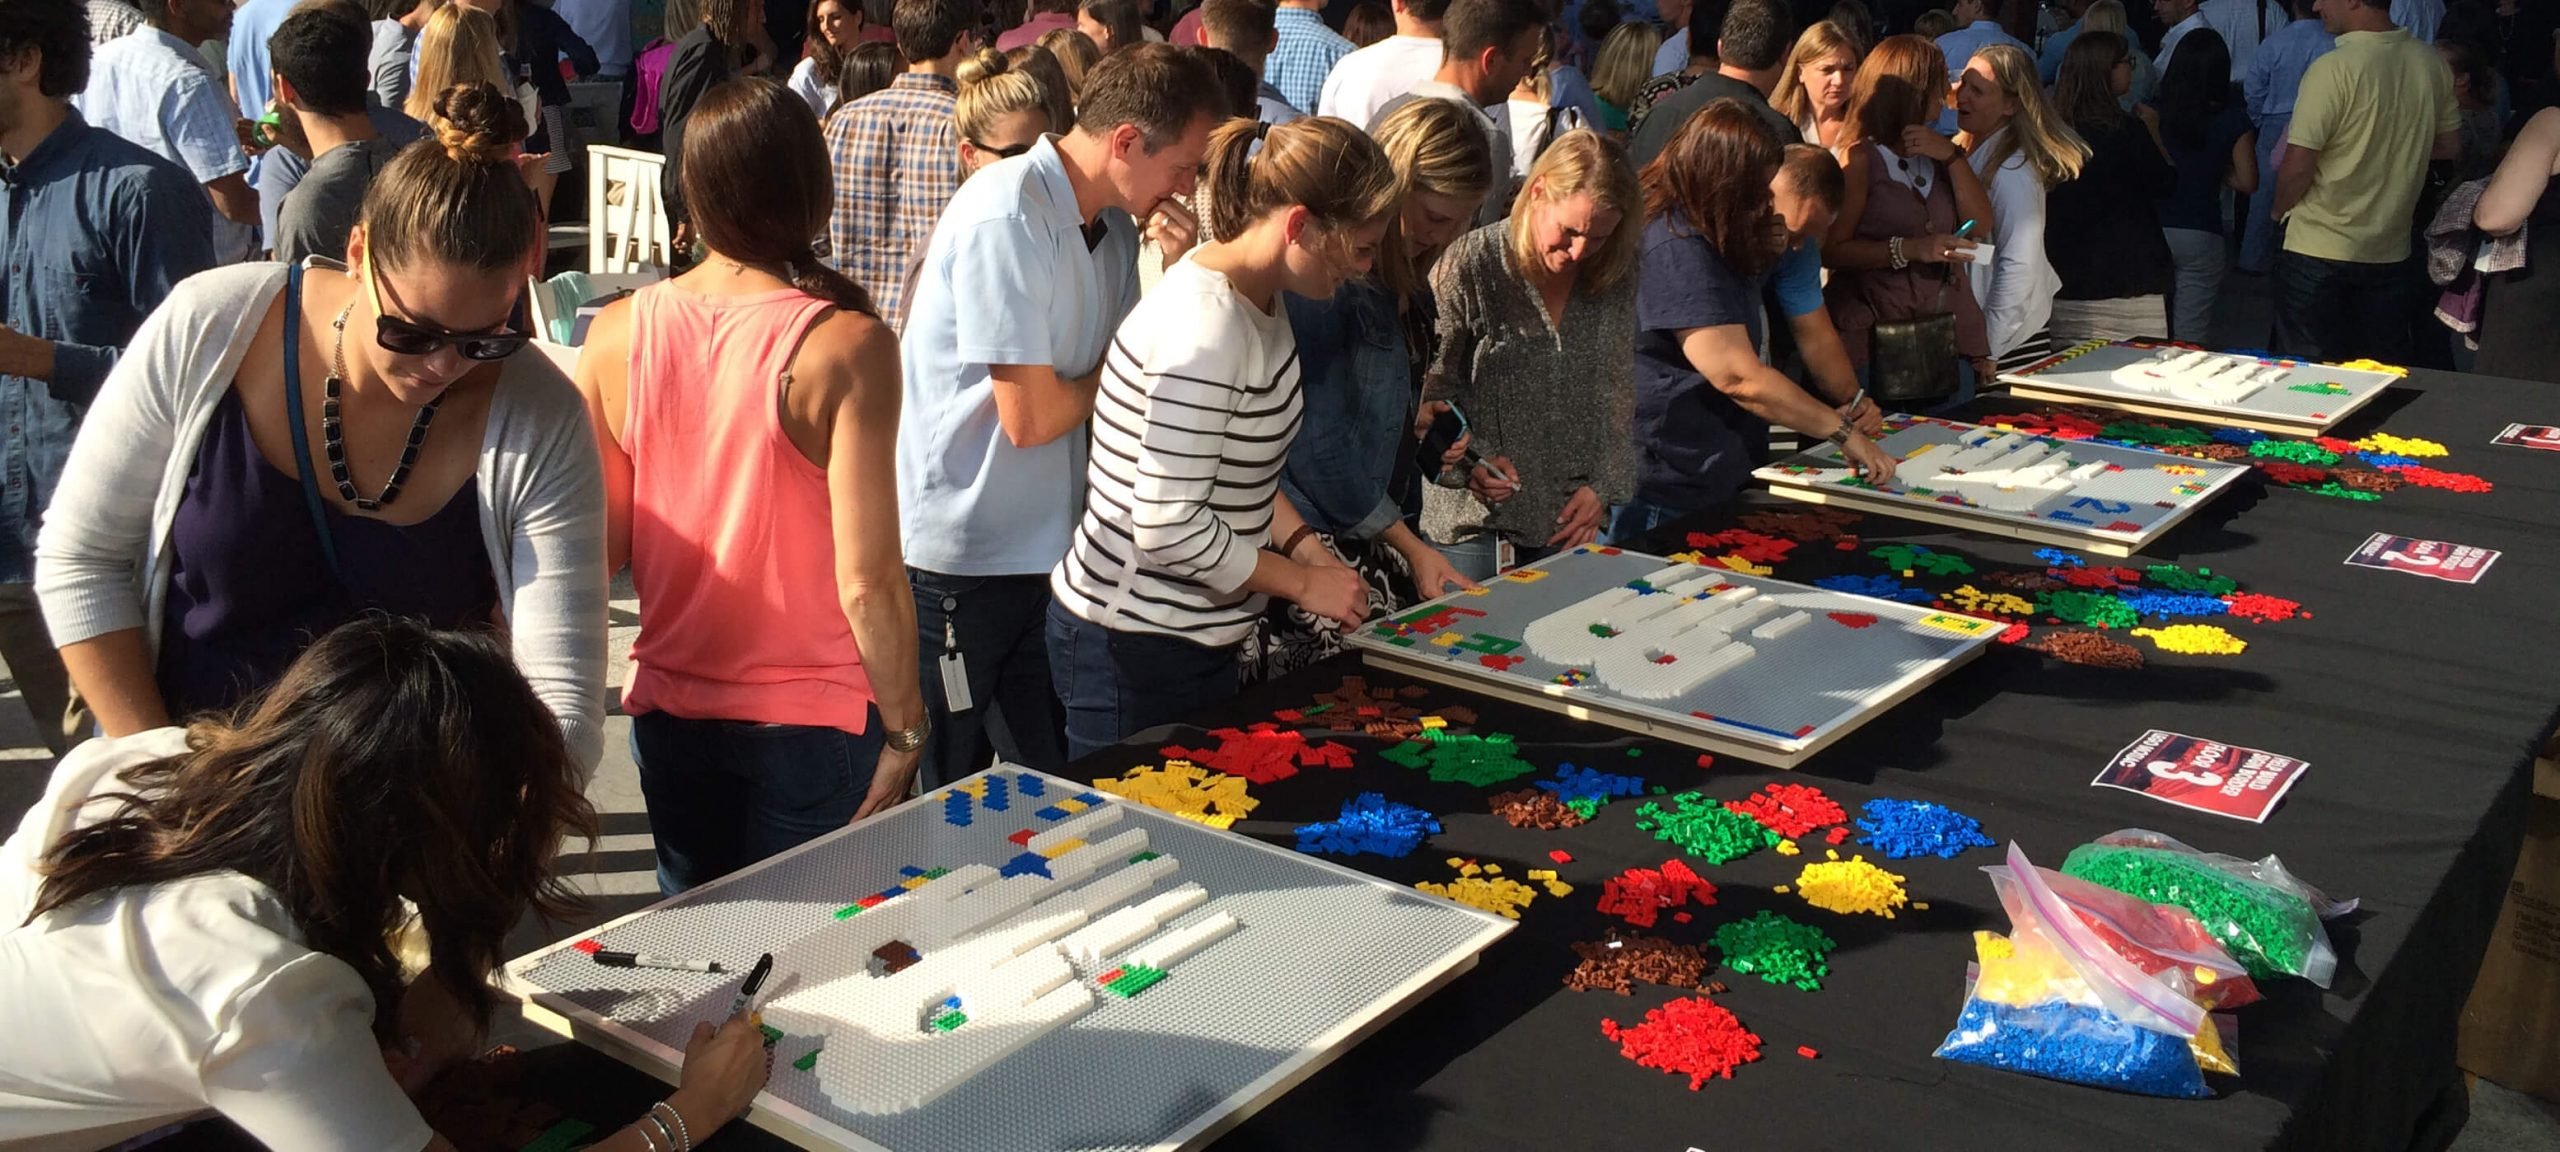 lego-event-large-crowd-mosaic-art